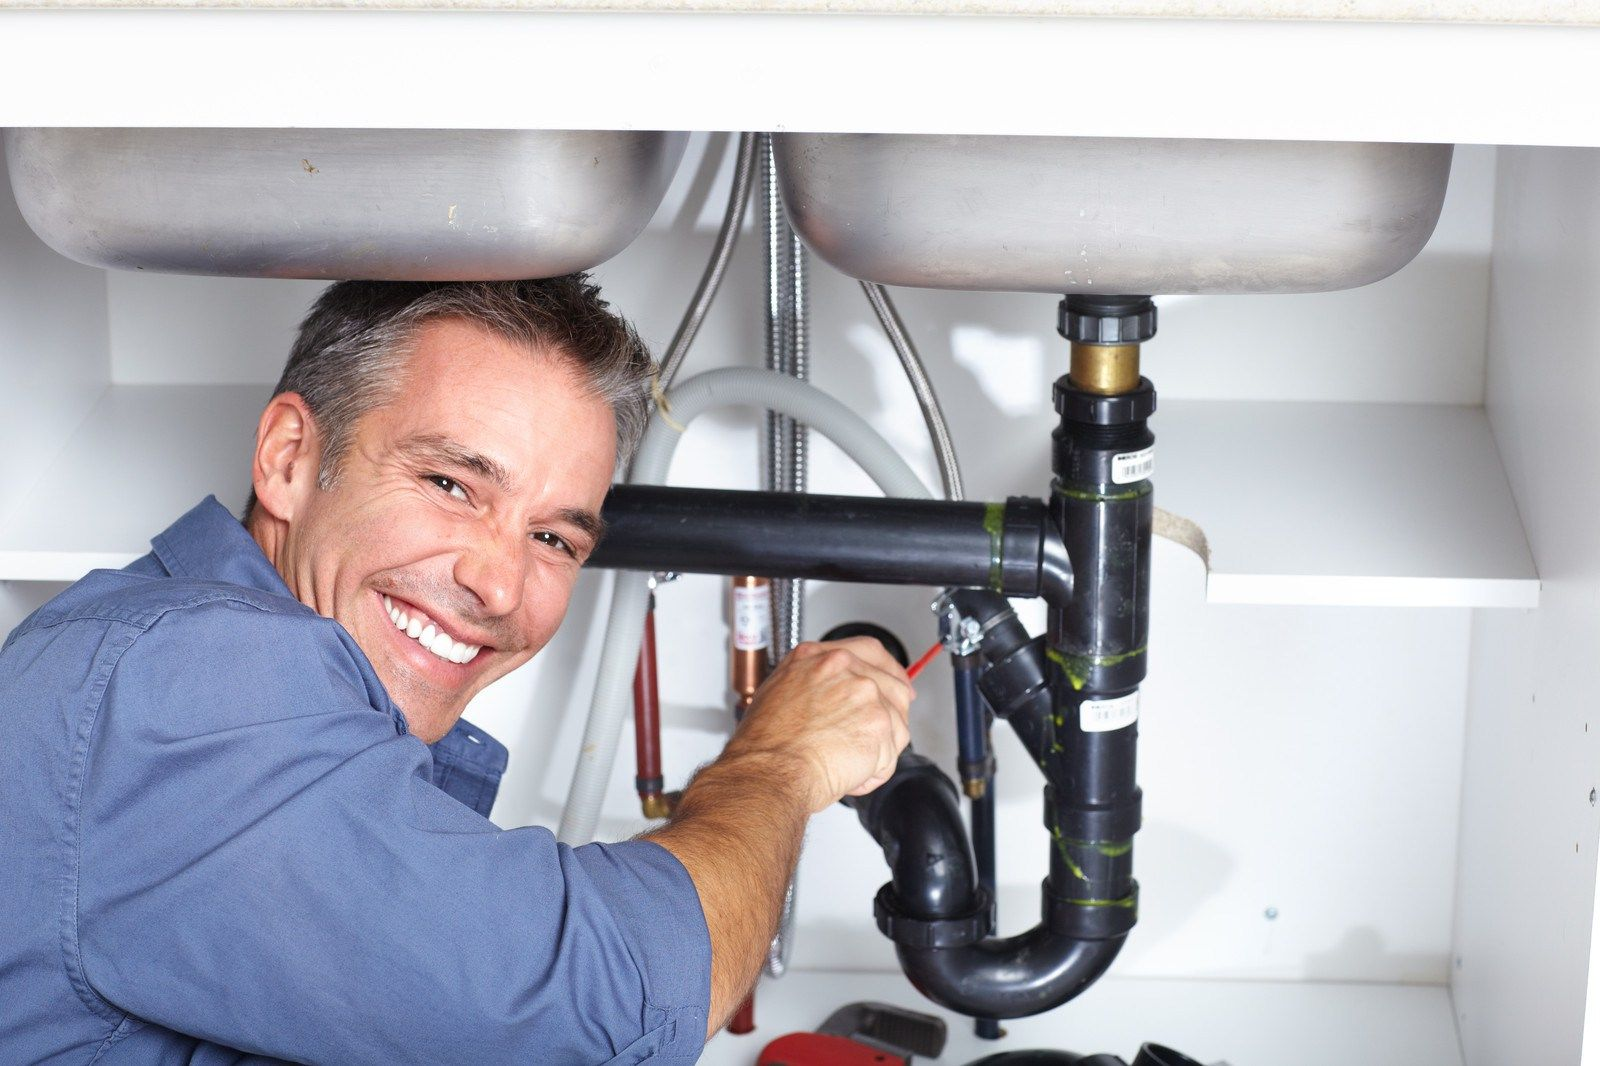 We specialize in residential plumbing, heating, air